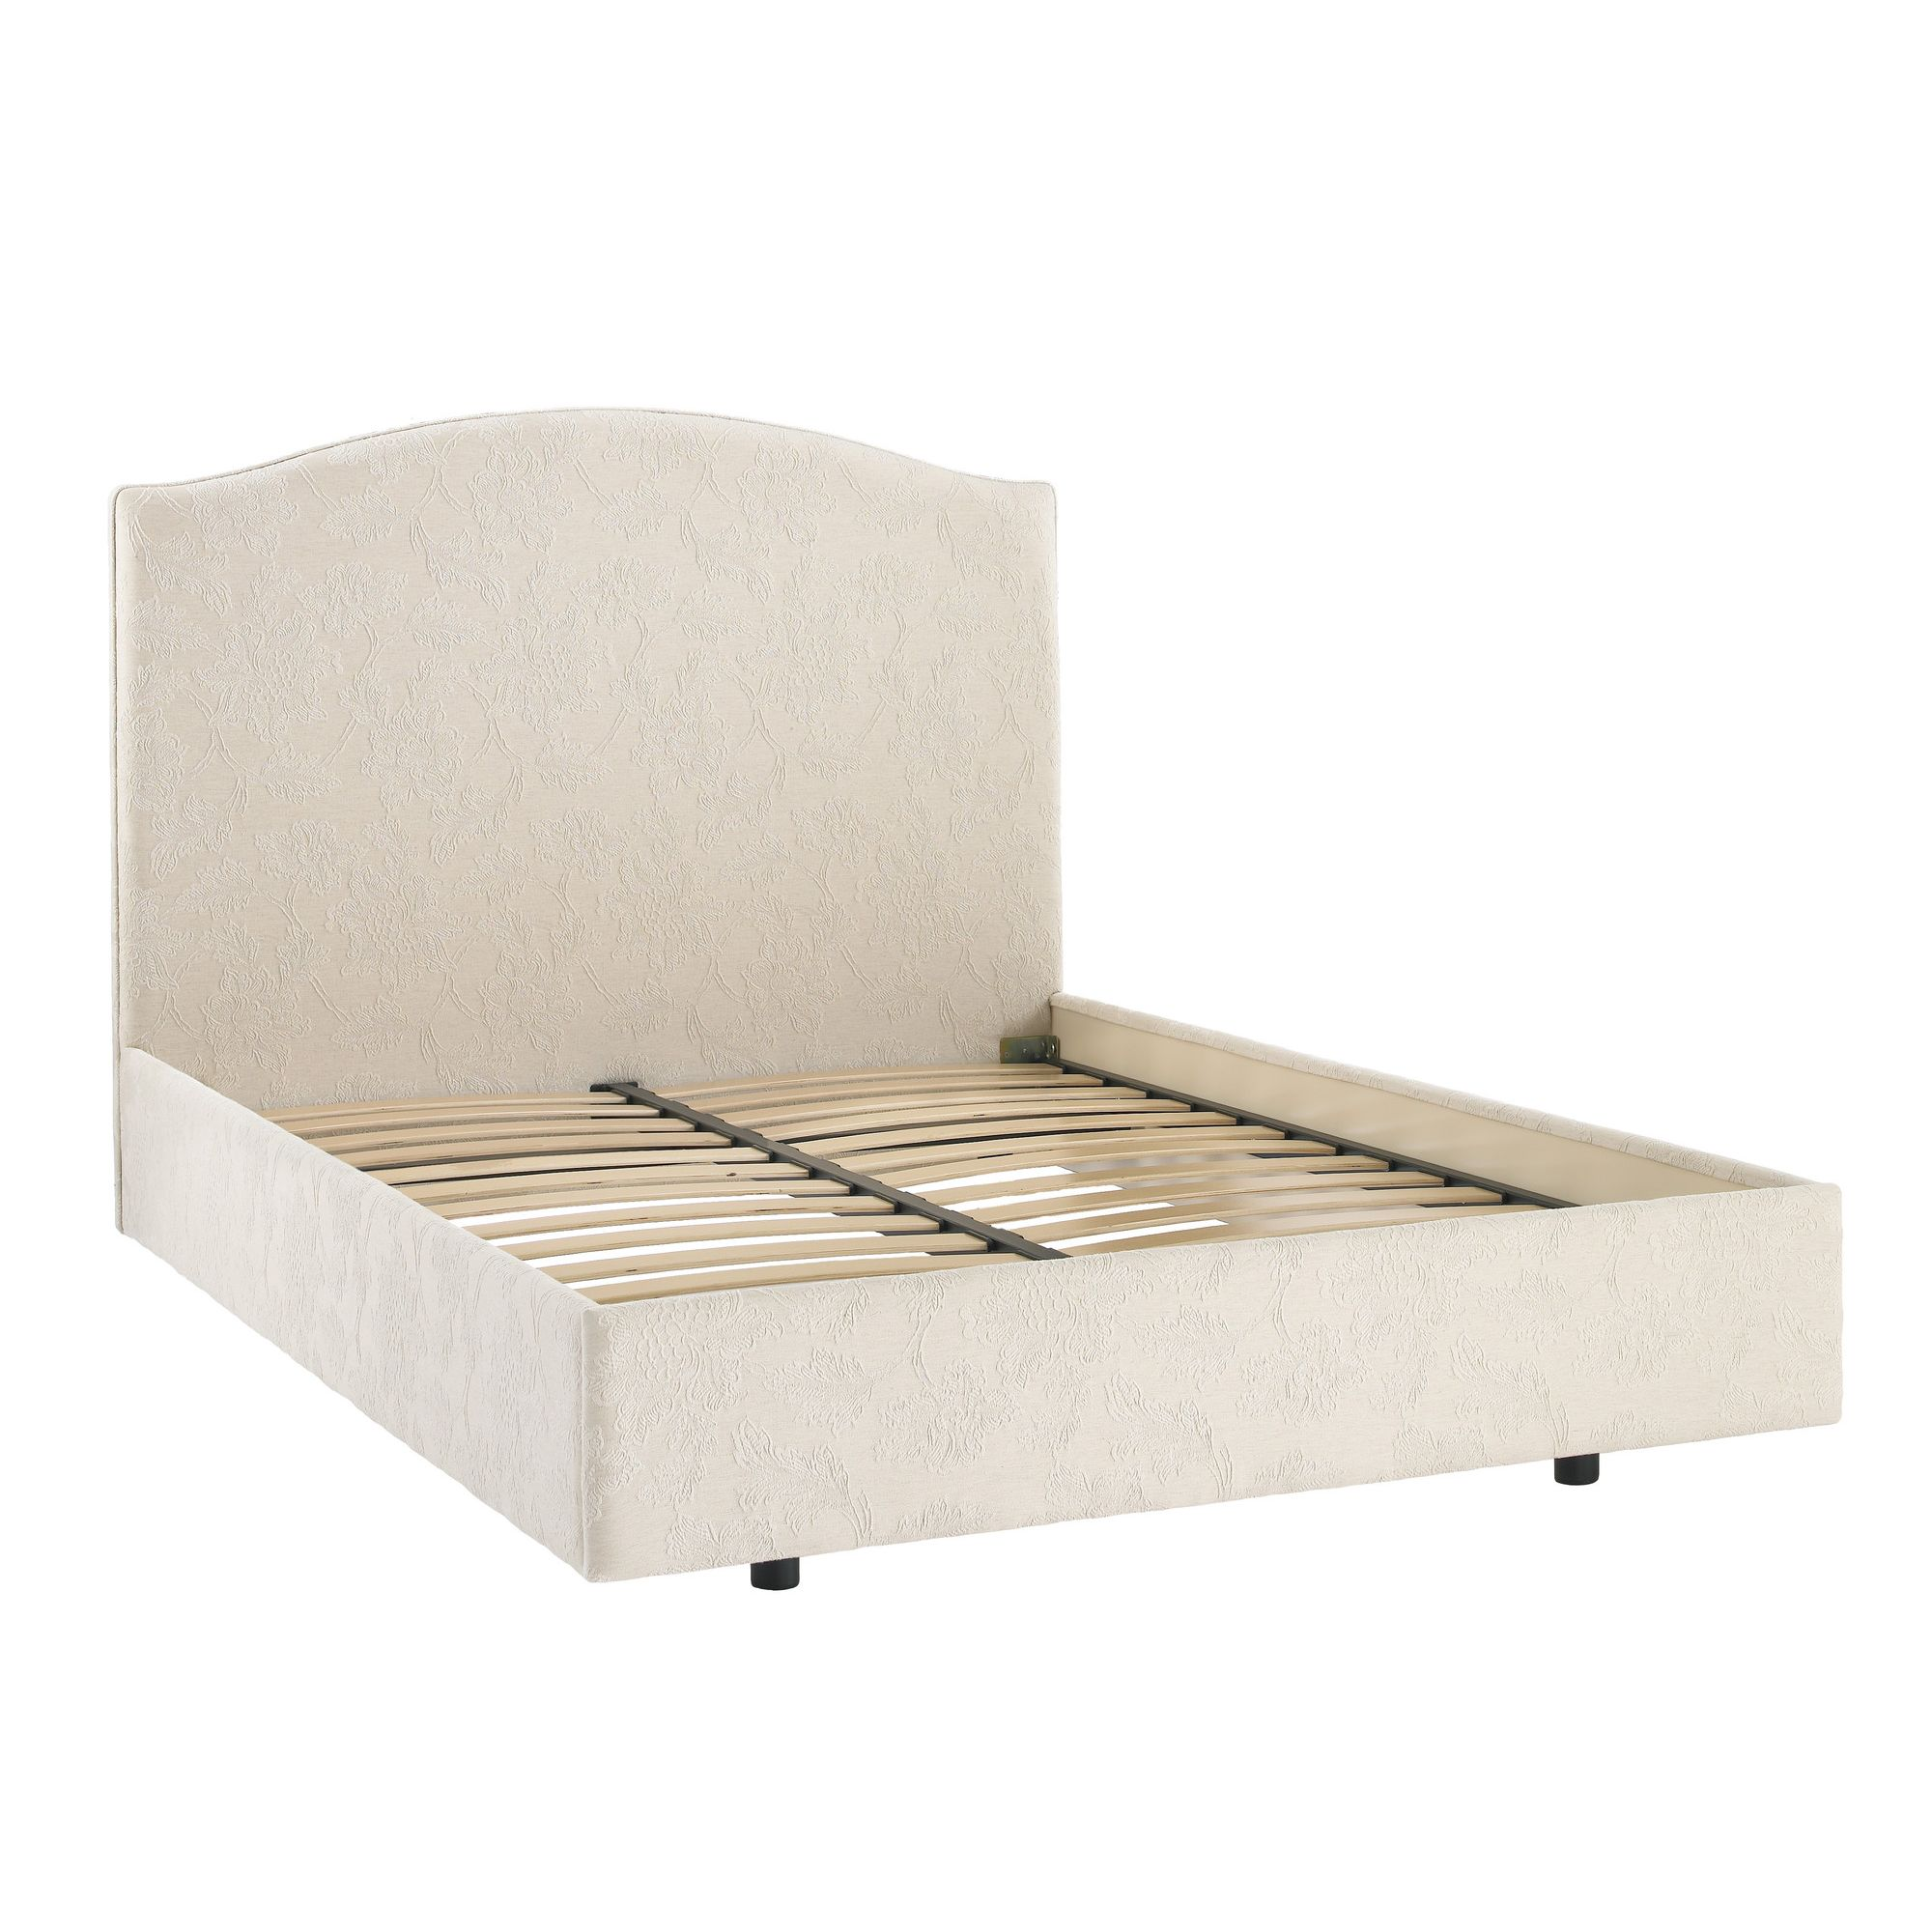 Swanglen Nice Ottoman Bedstead - Double / Chelsea Raven at Tesco Direct